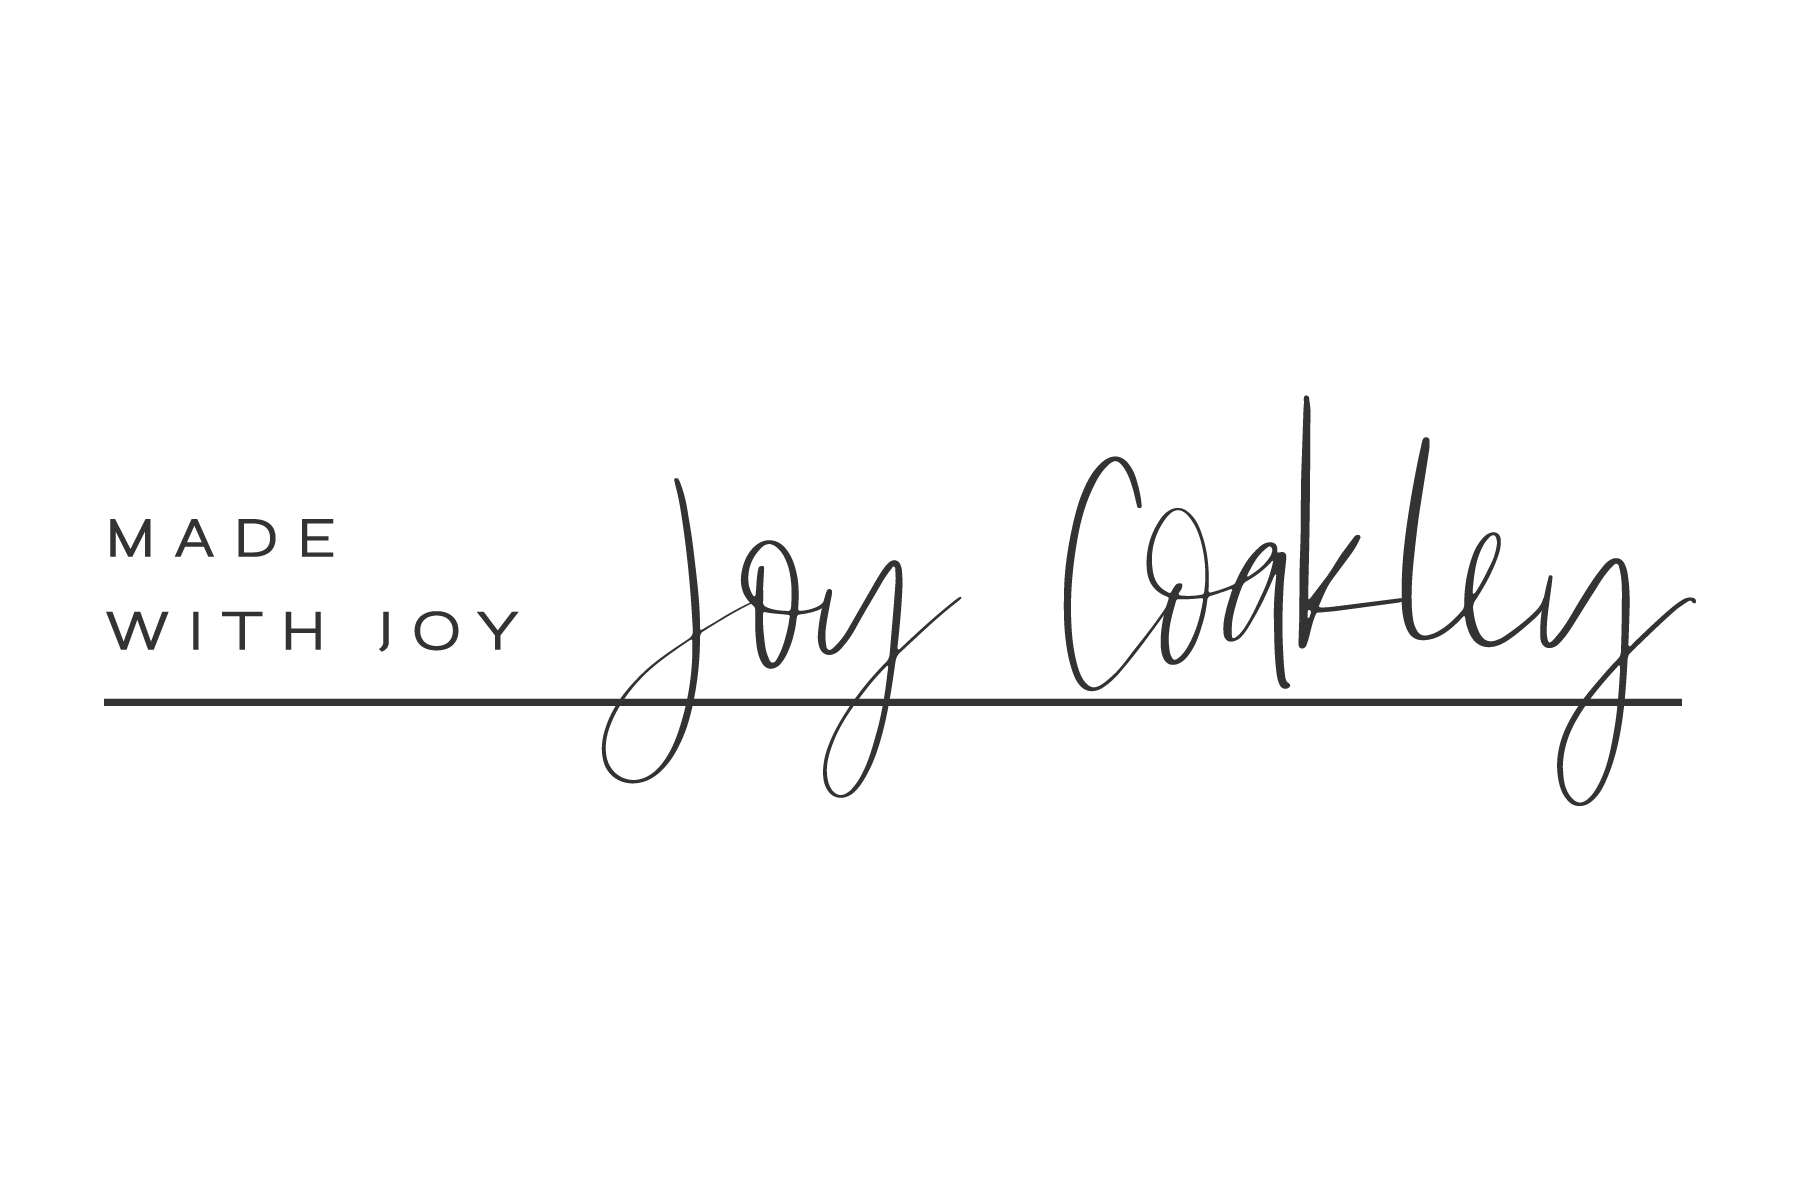 Joy Coakley Studio_Made with Joy.png